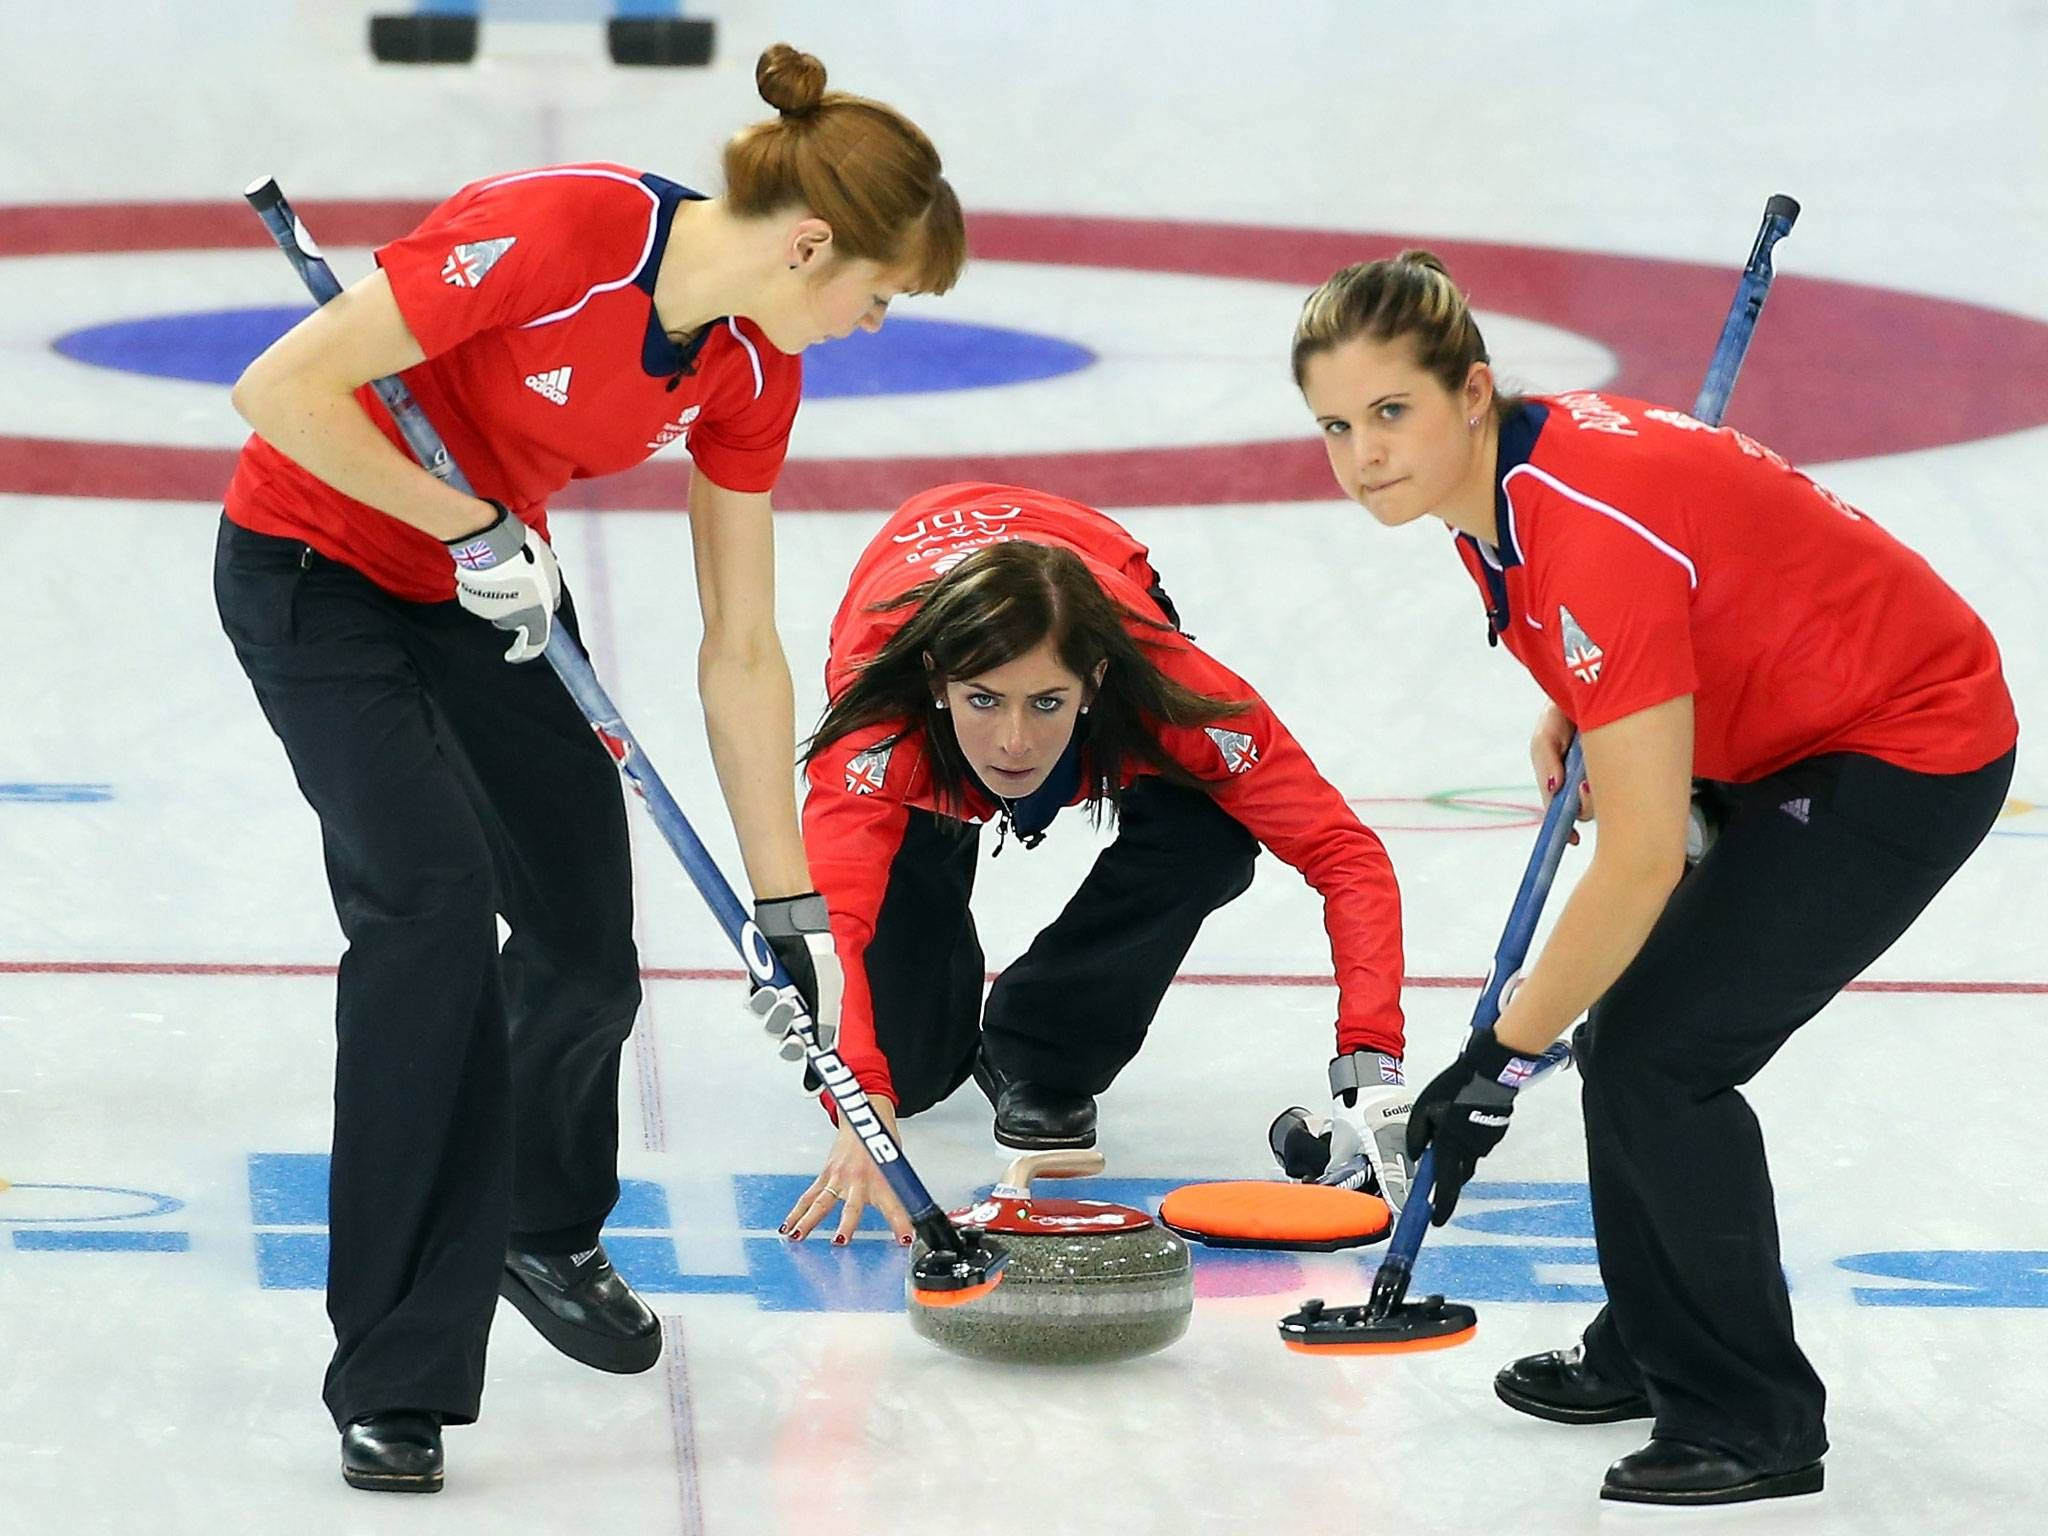 Winter Olympics 2014: Great Britain's women's curling team record second rout with emphatic 12-3 win over Japan